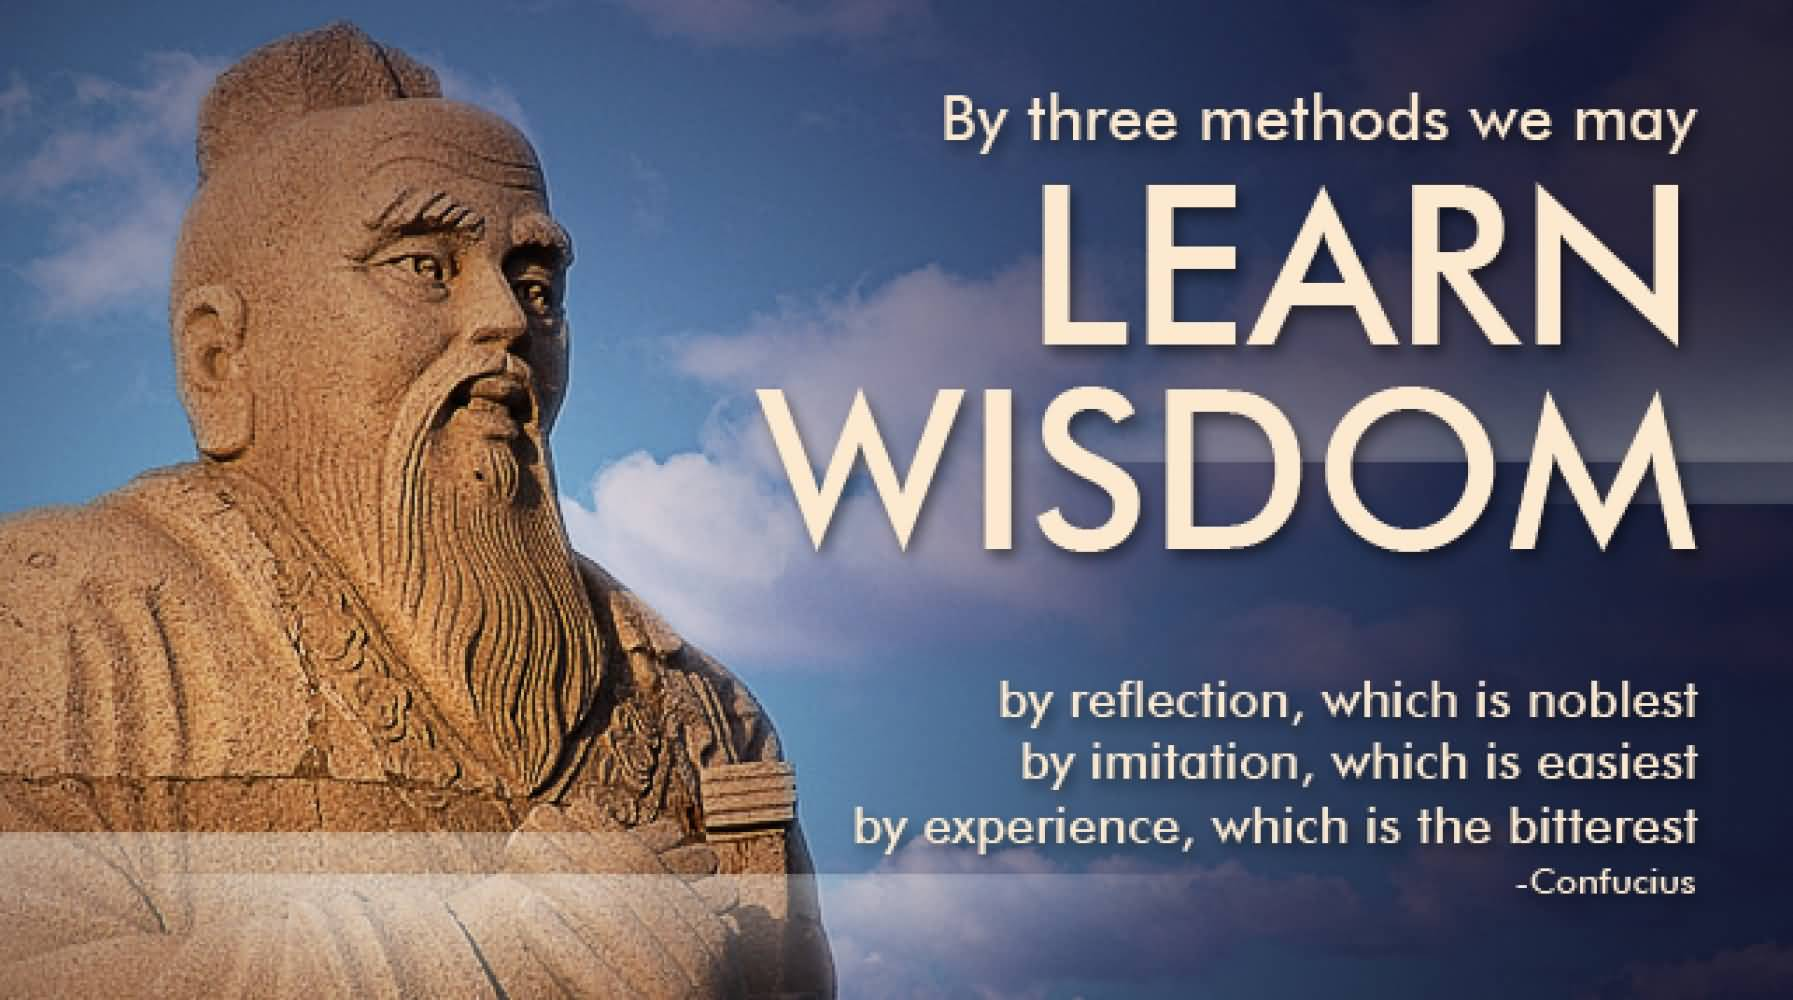 """an overview of the living well according to confucius and plato It means living well  according to the ancient greeks  the characteristic that enable the soul to govern the body well) is what plato calls """"justice""""."""